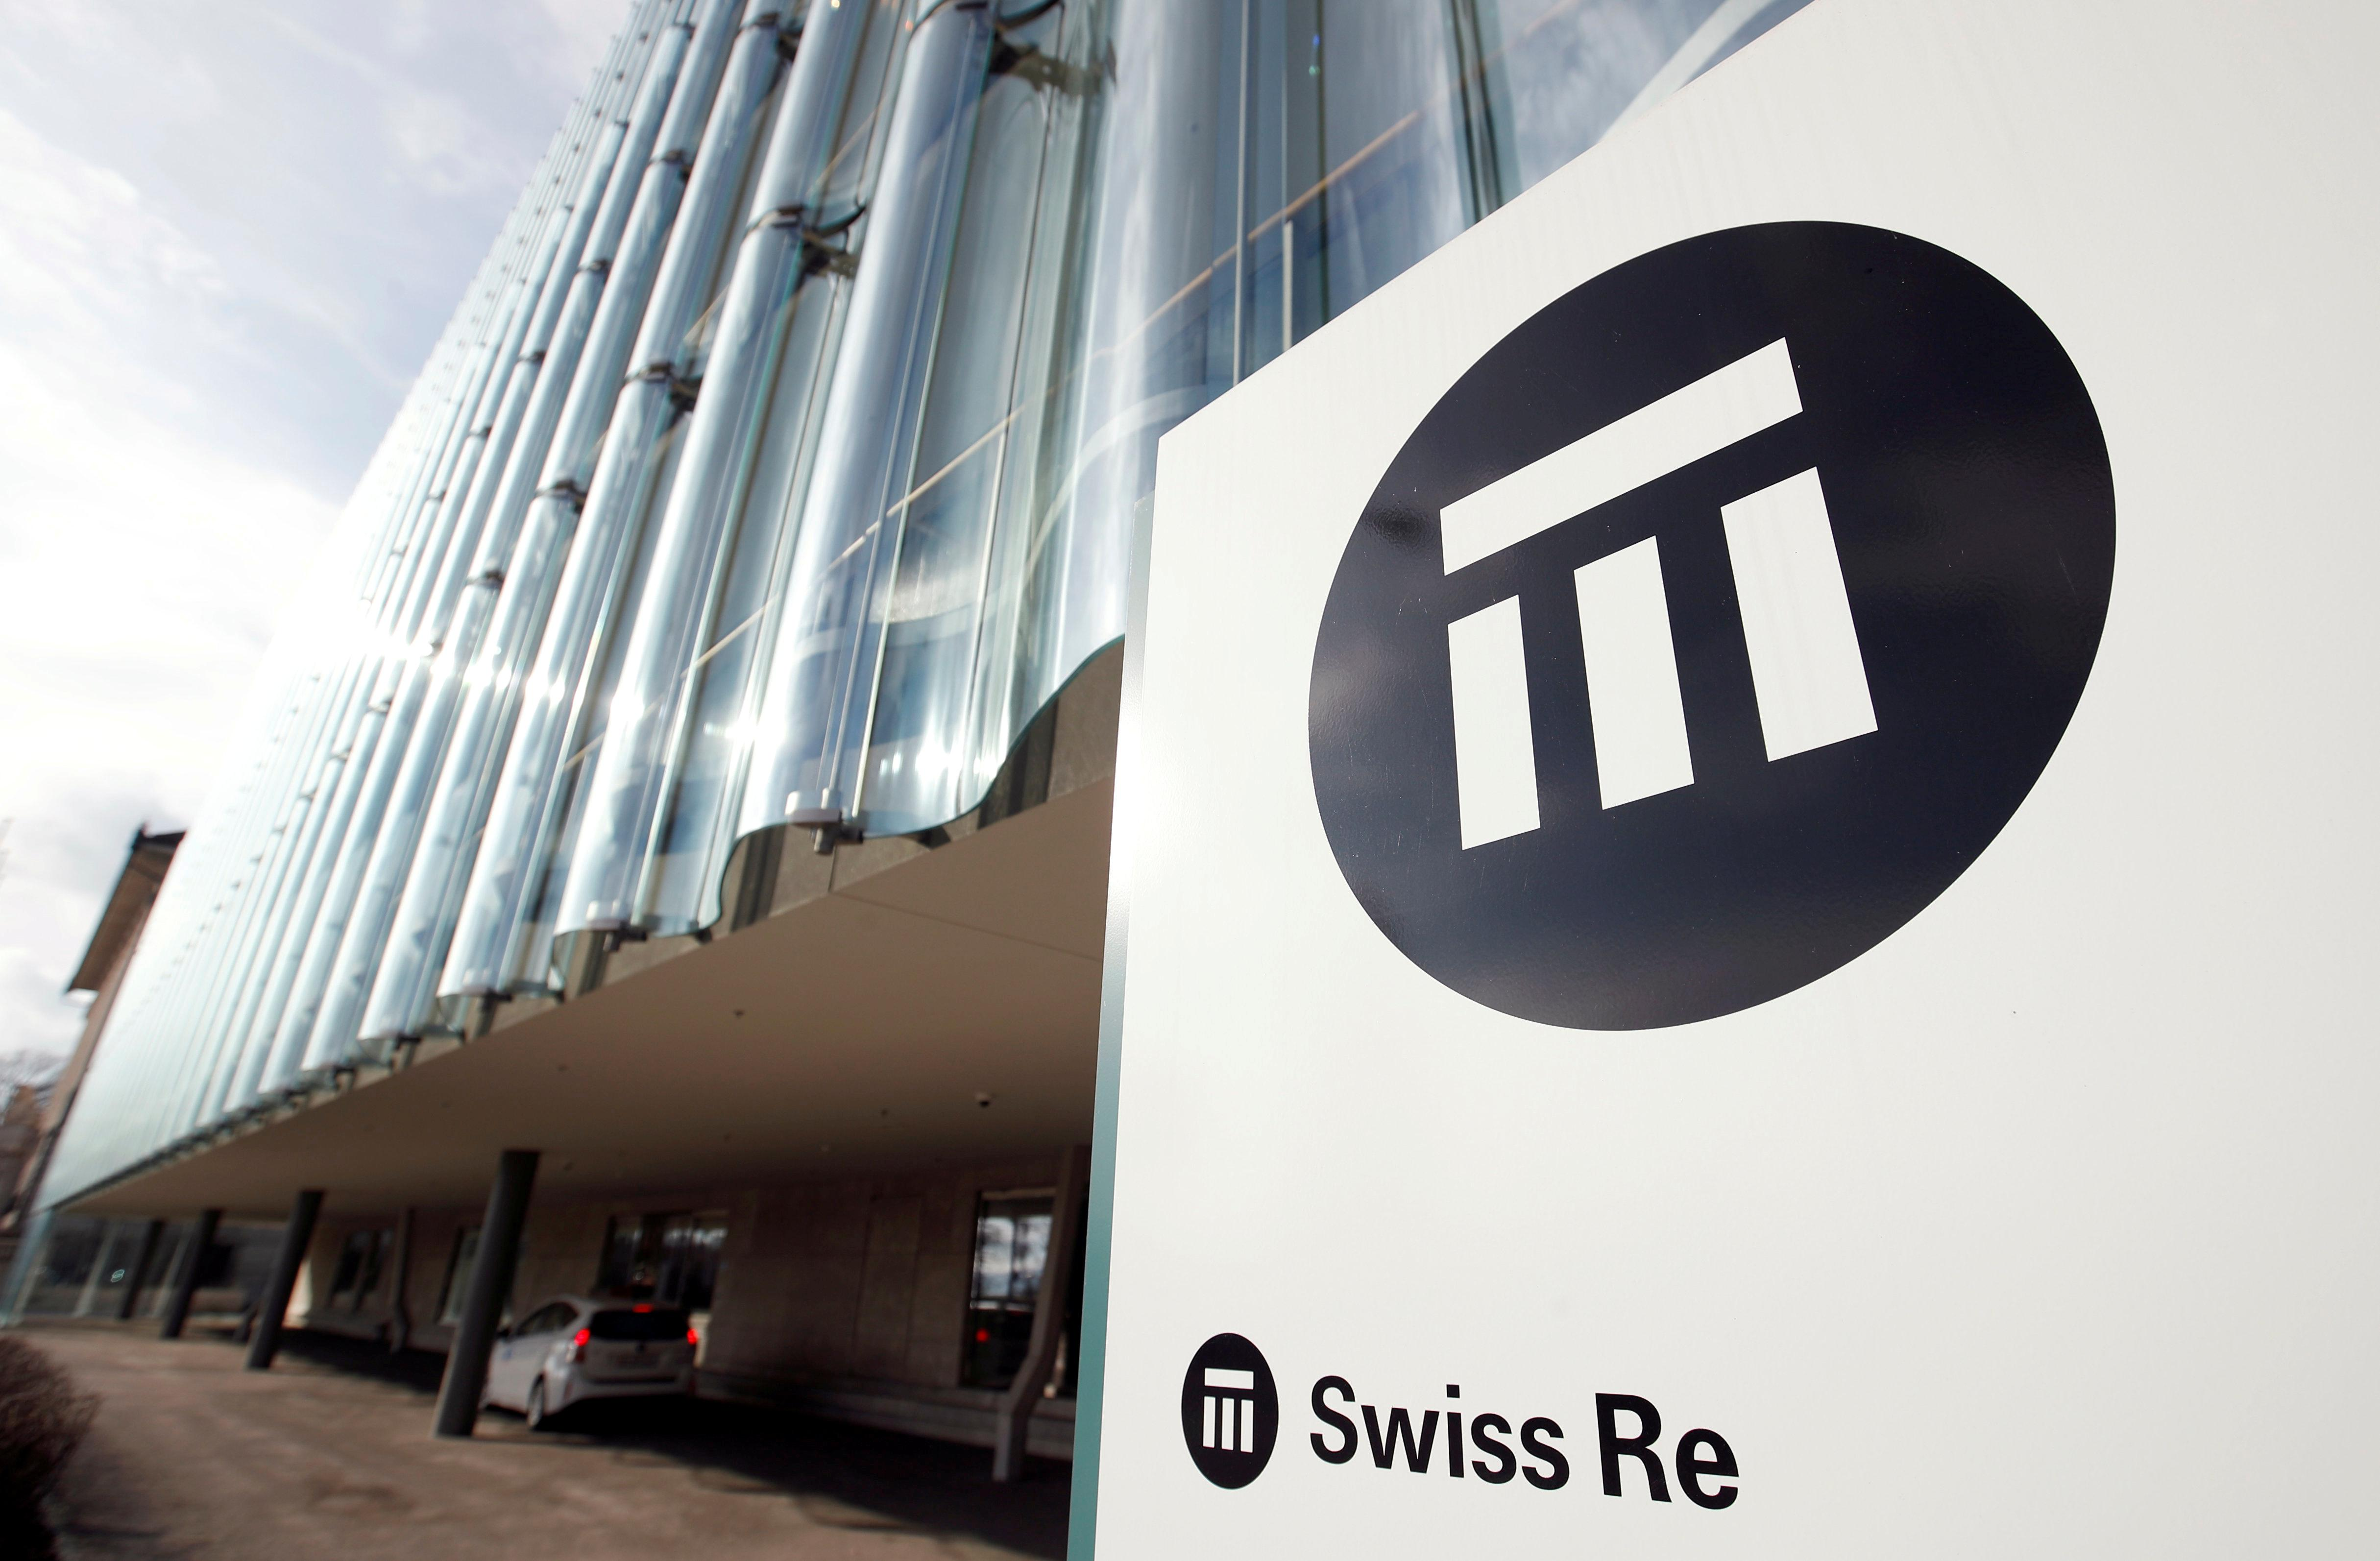 Swiss Re's ReAssure valued at up to £3.3 billion in IPO